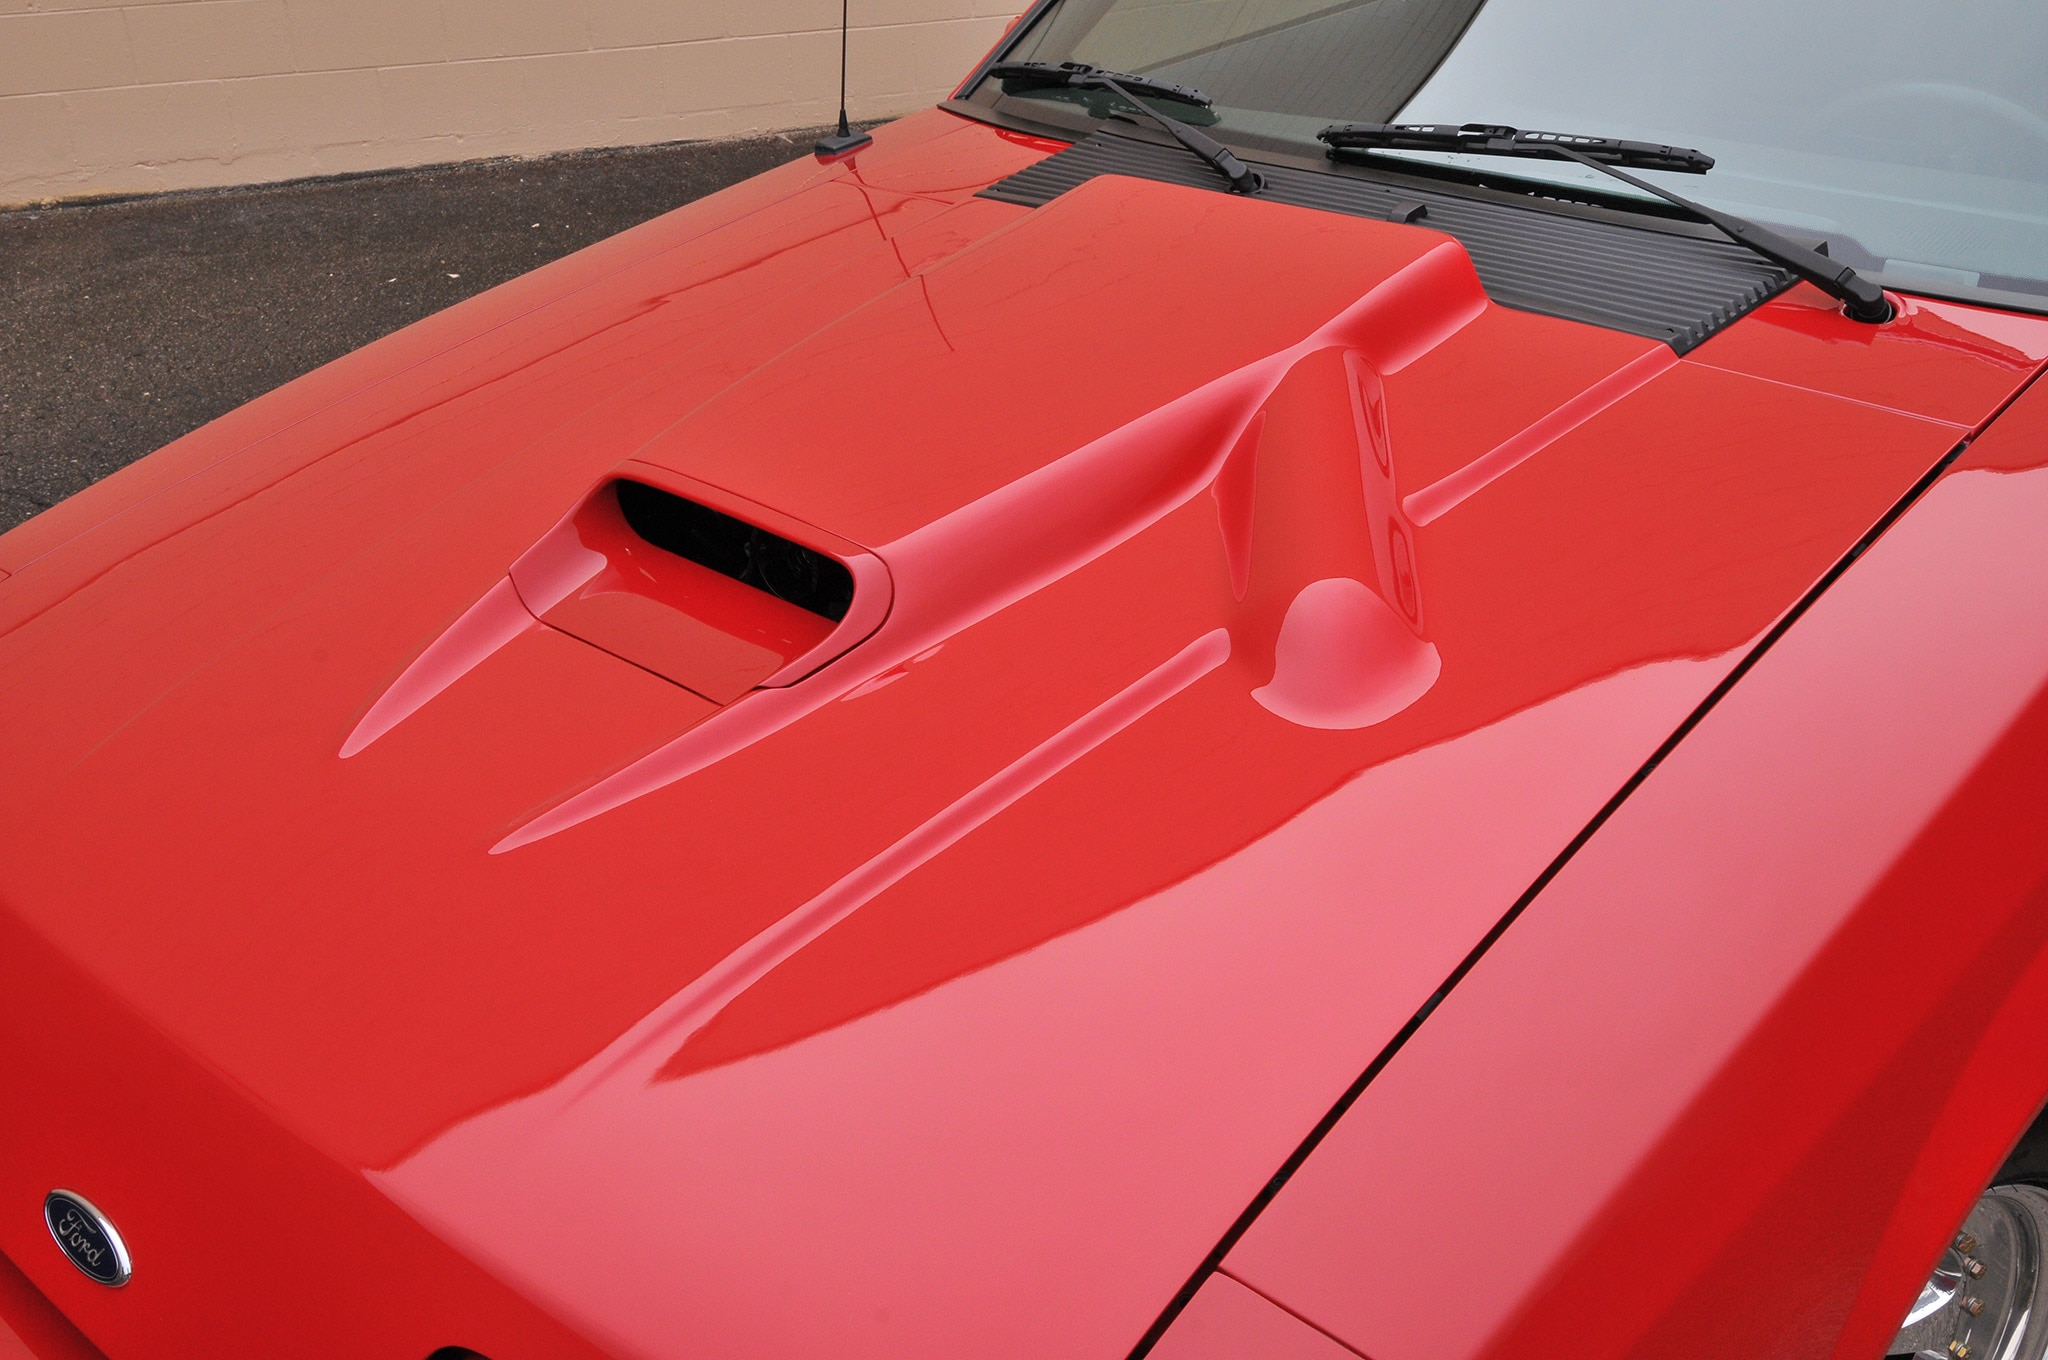 1986 Ford Mustang Svo Coyote Vermillion Red Hood Vent